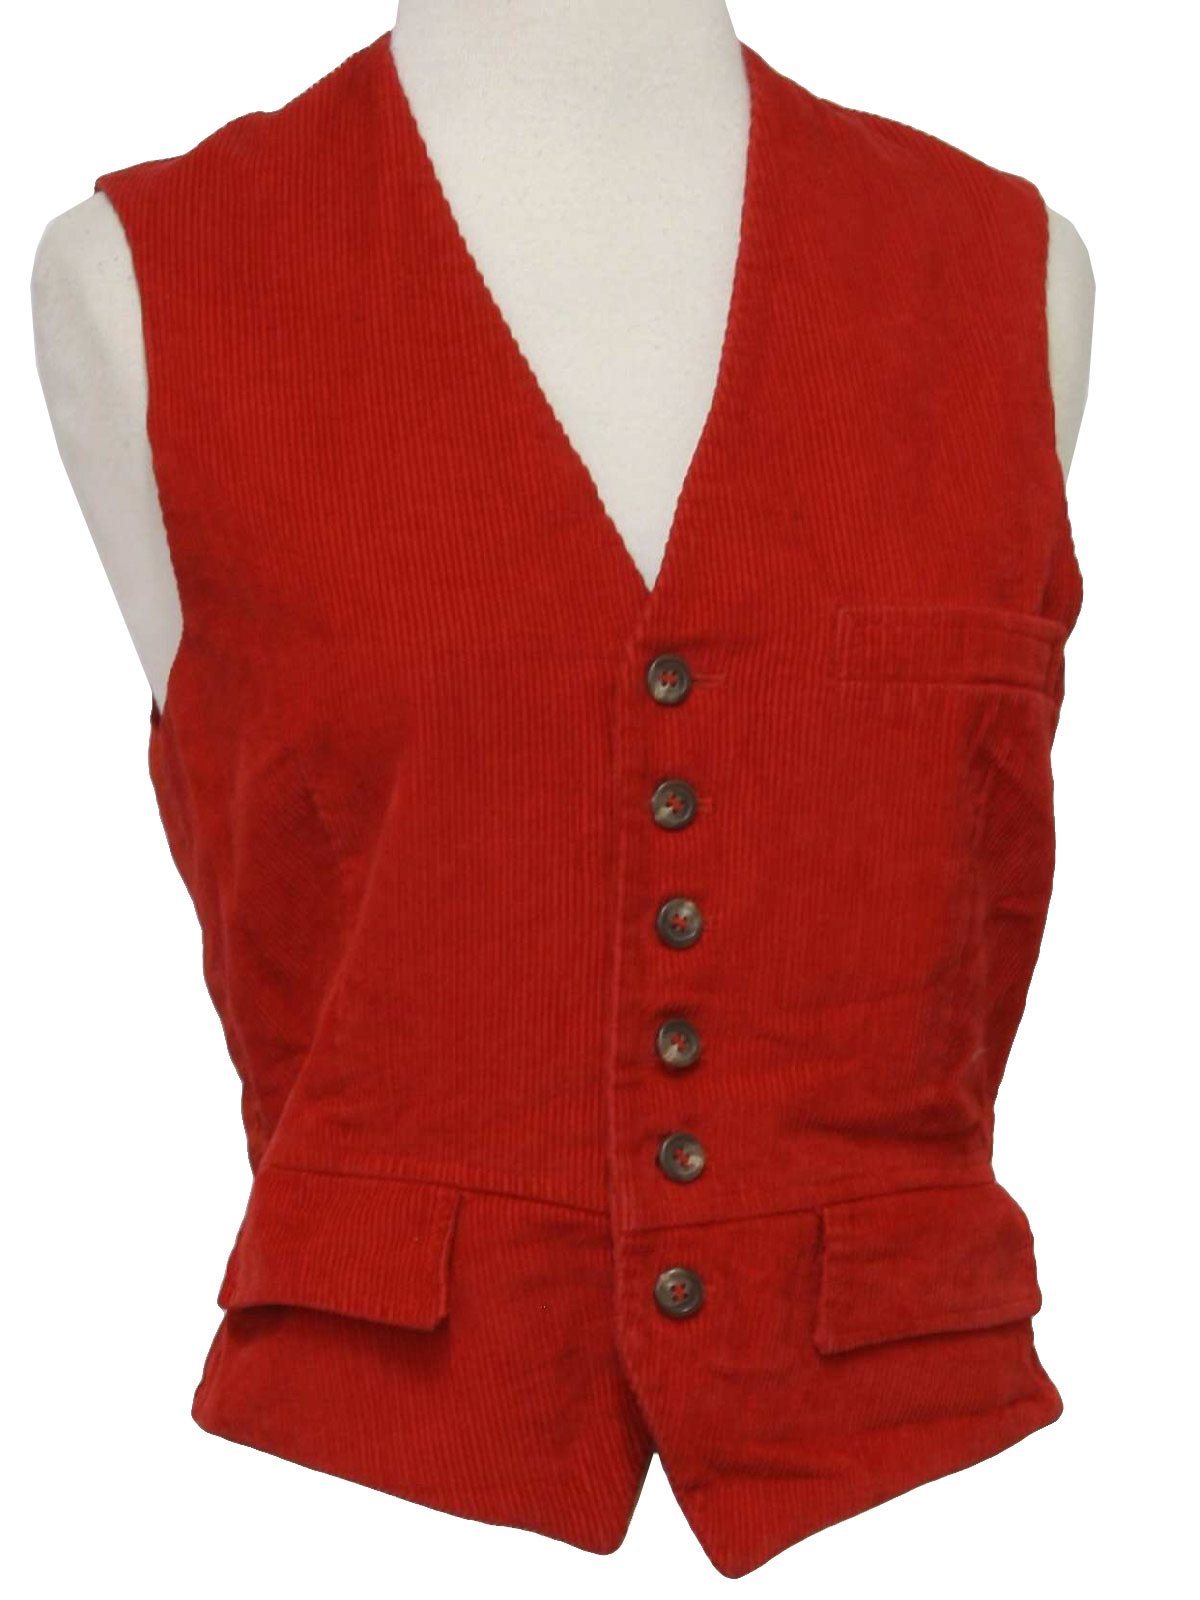 Explore our collection of women's vests for multiple occasions. A vest can add much-needed dimension to your outfit. Invest in fashion-forward picks you'll want to wear often.